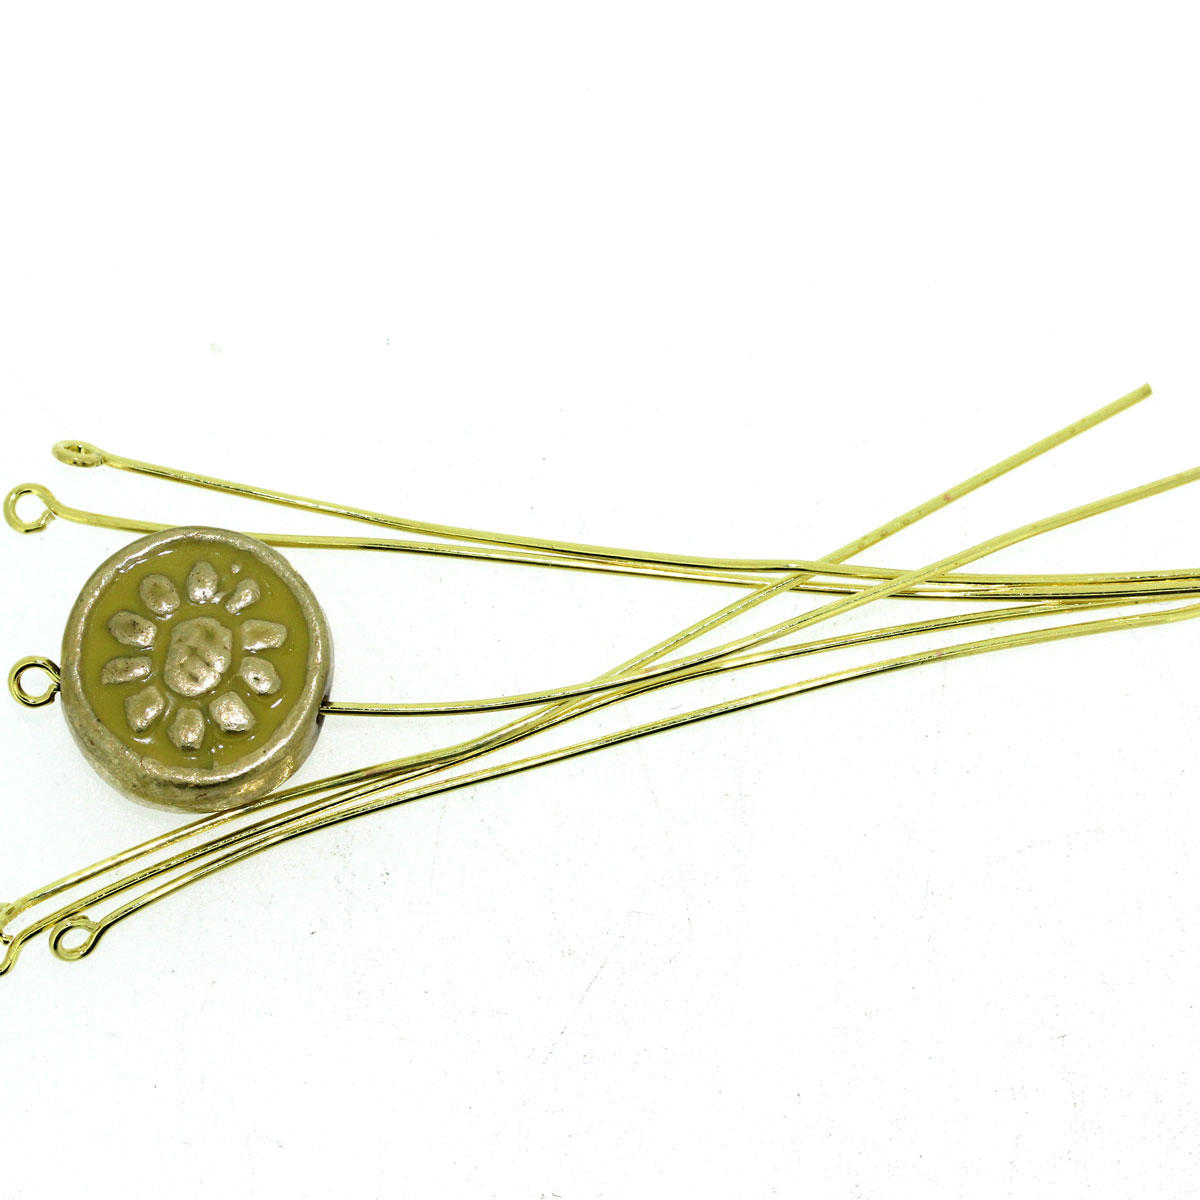 Gold Headpins & Eyepins